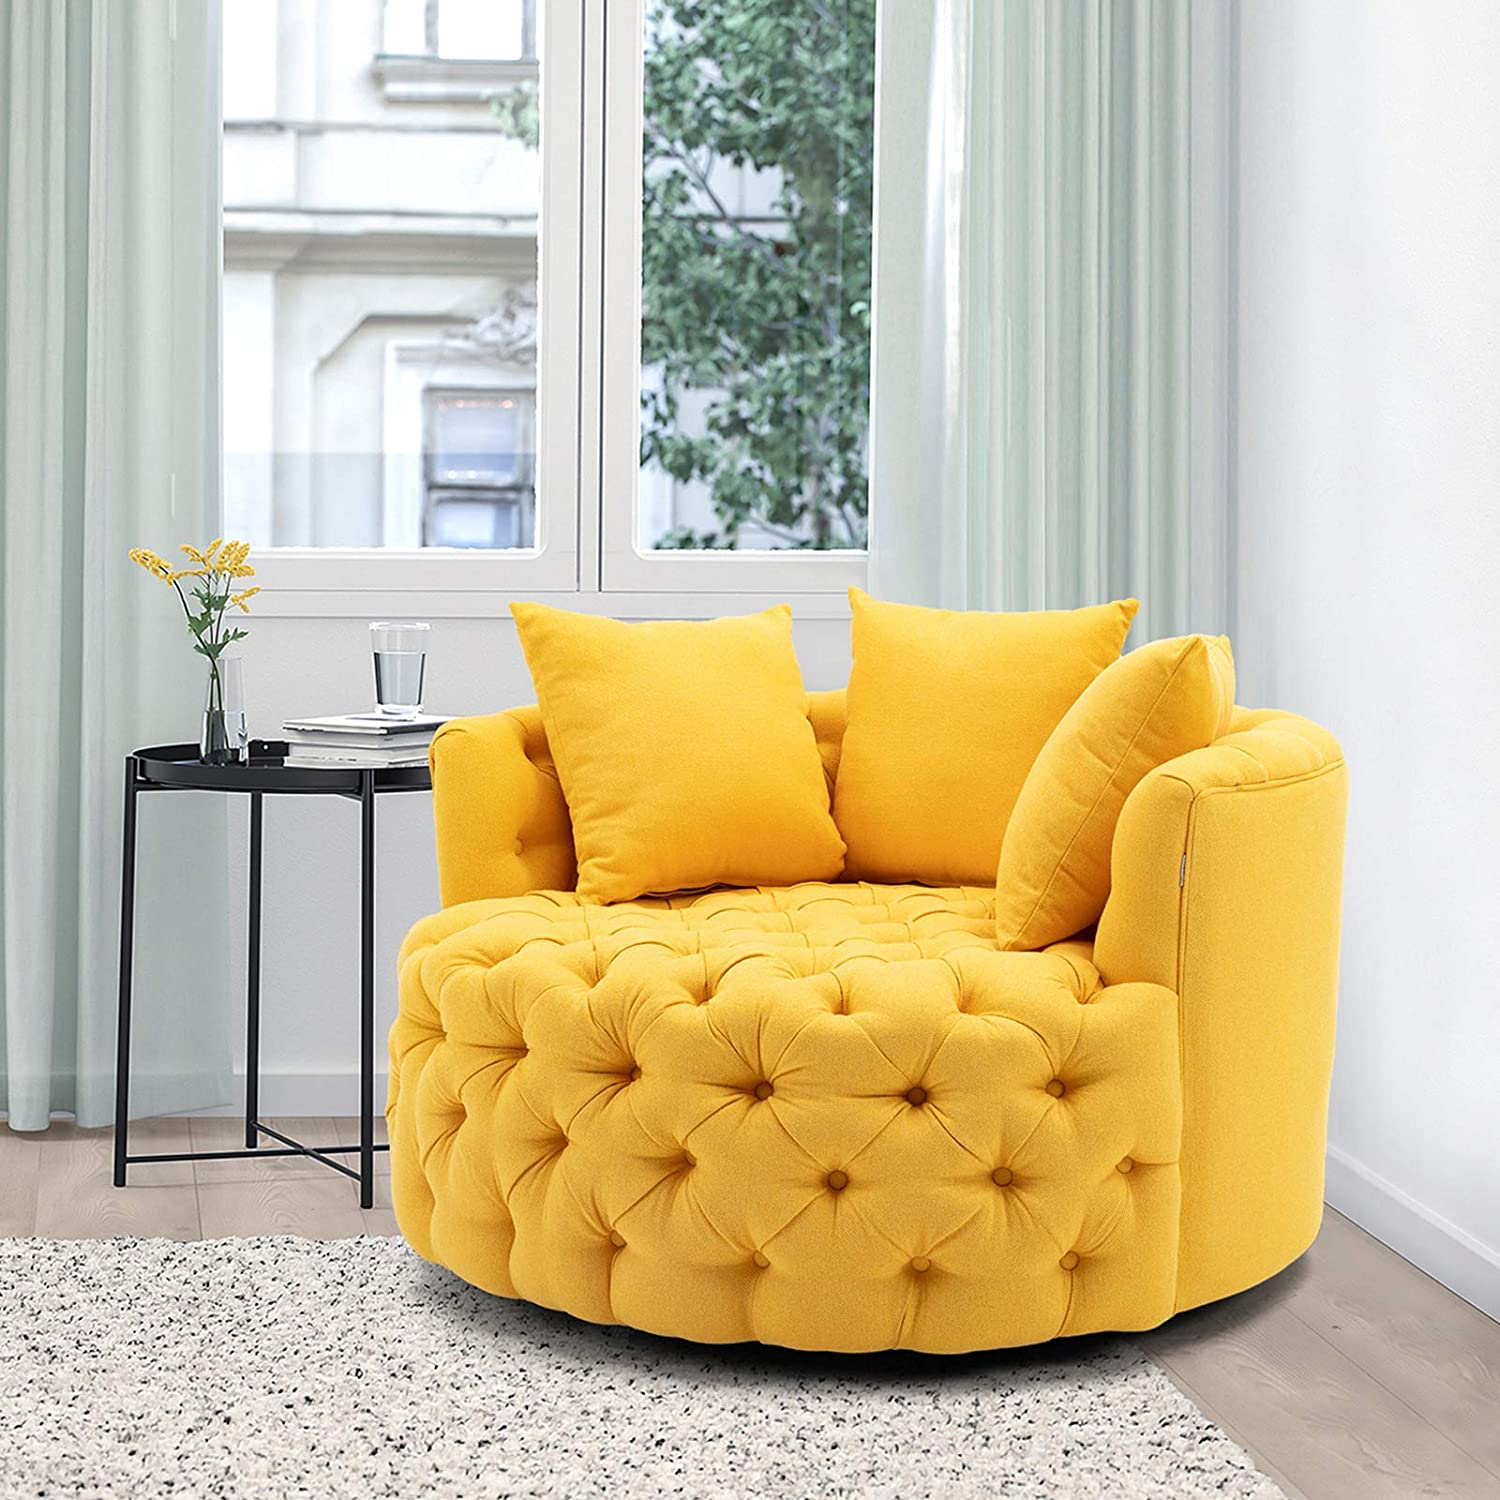 Modern Akili Swivel Accent Chair Barrel Chair for Home Living Room/Modern Leisure Chair Pink (43.70 Inches, Yellow)